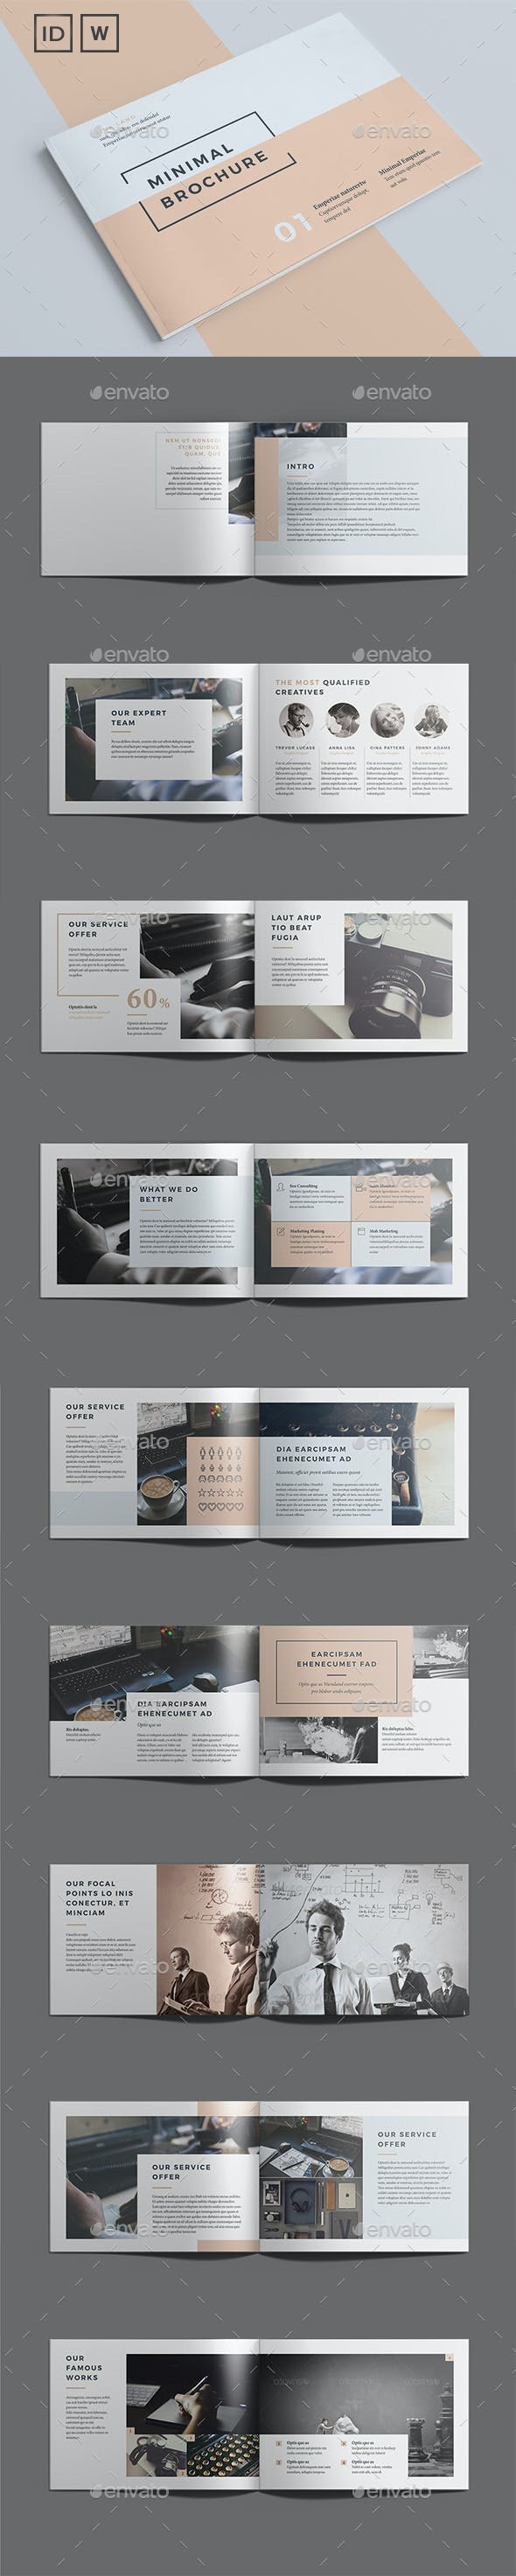 Minimal Brochure Vol II - Catalogs Brochures